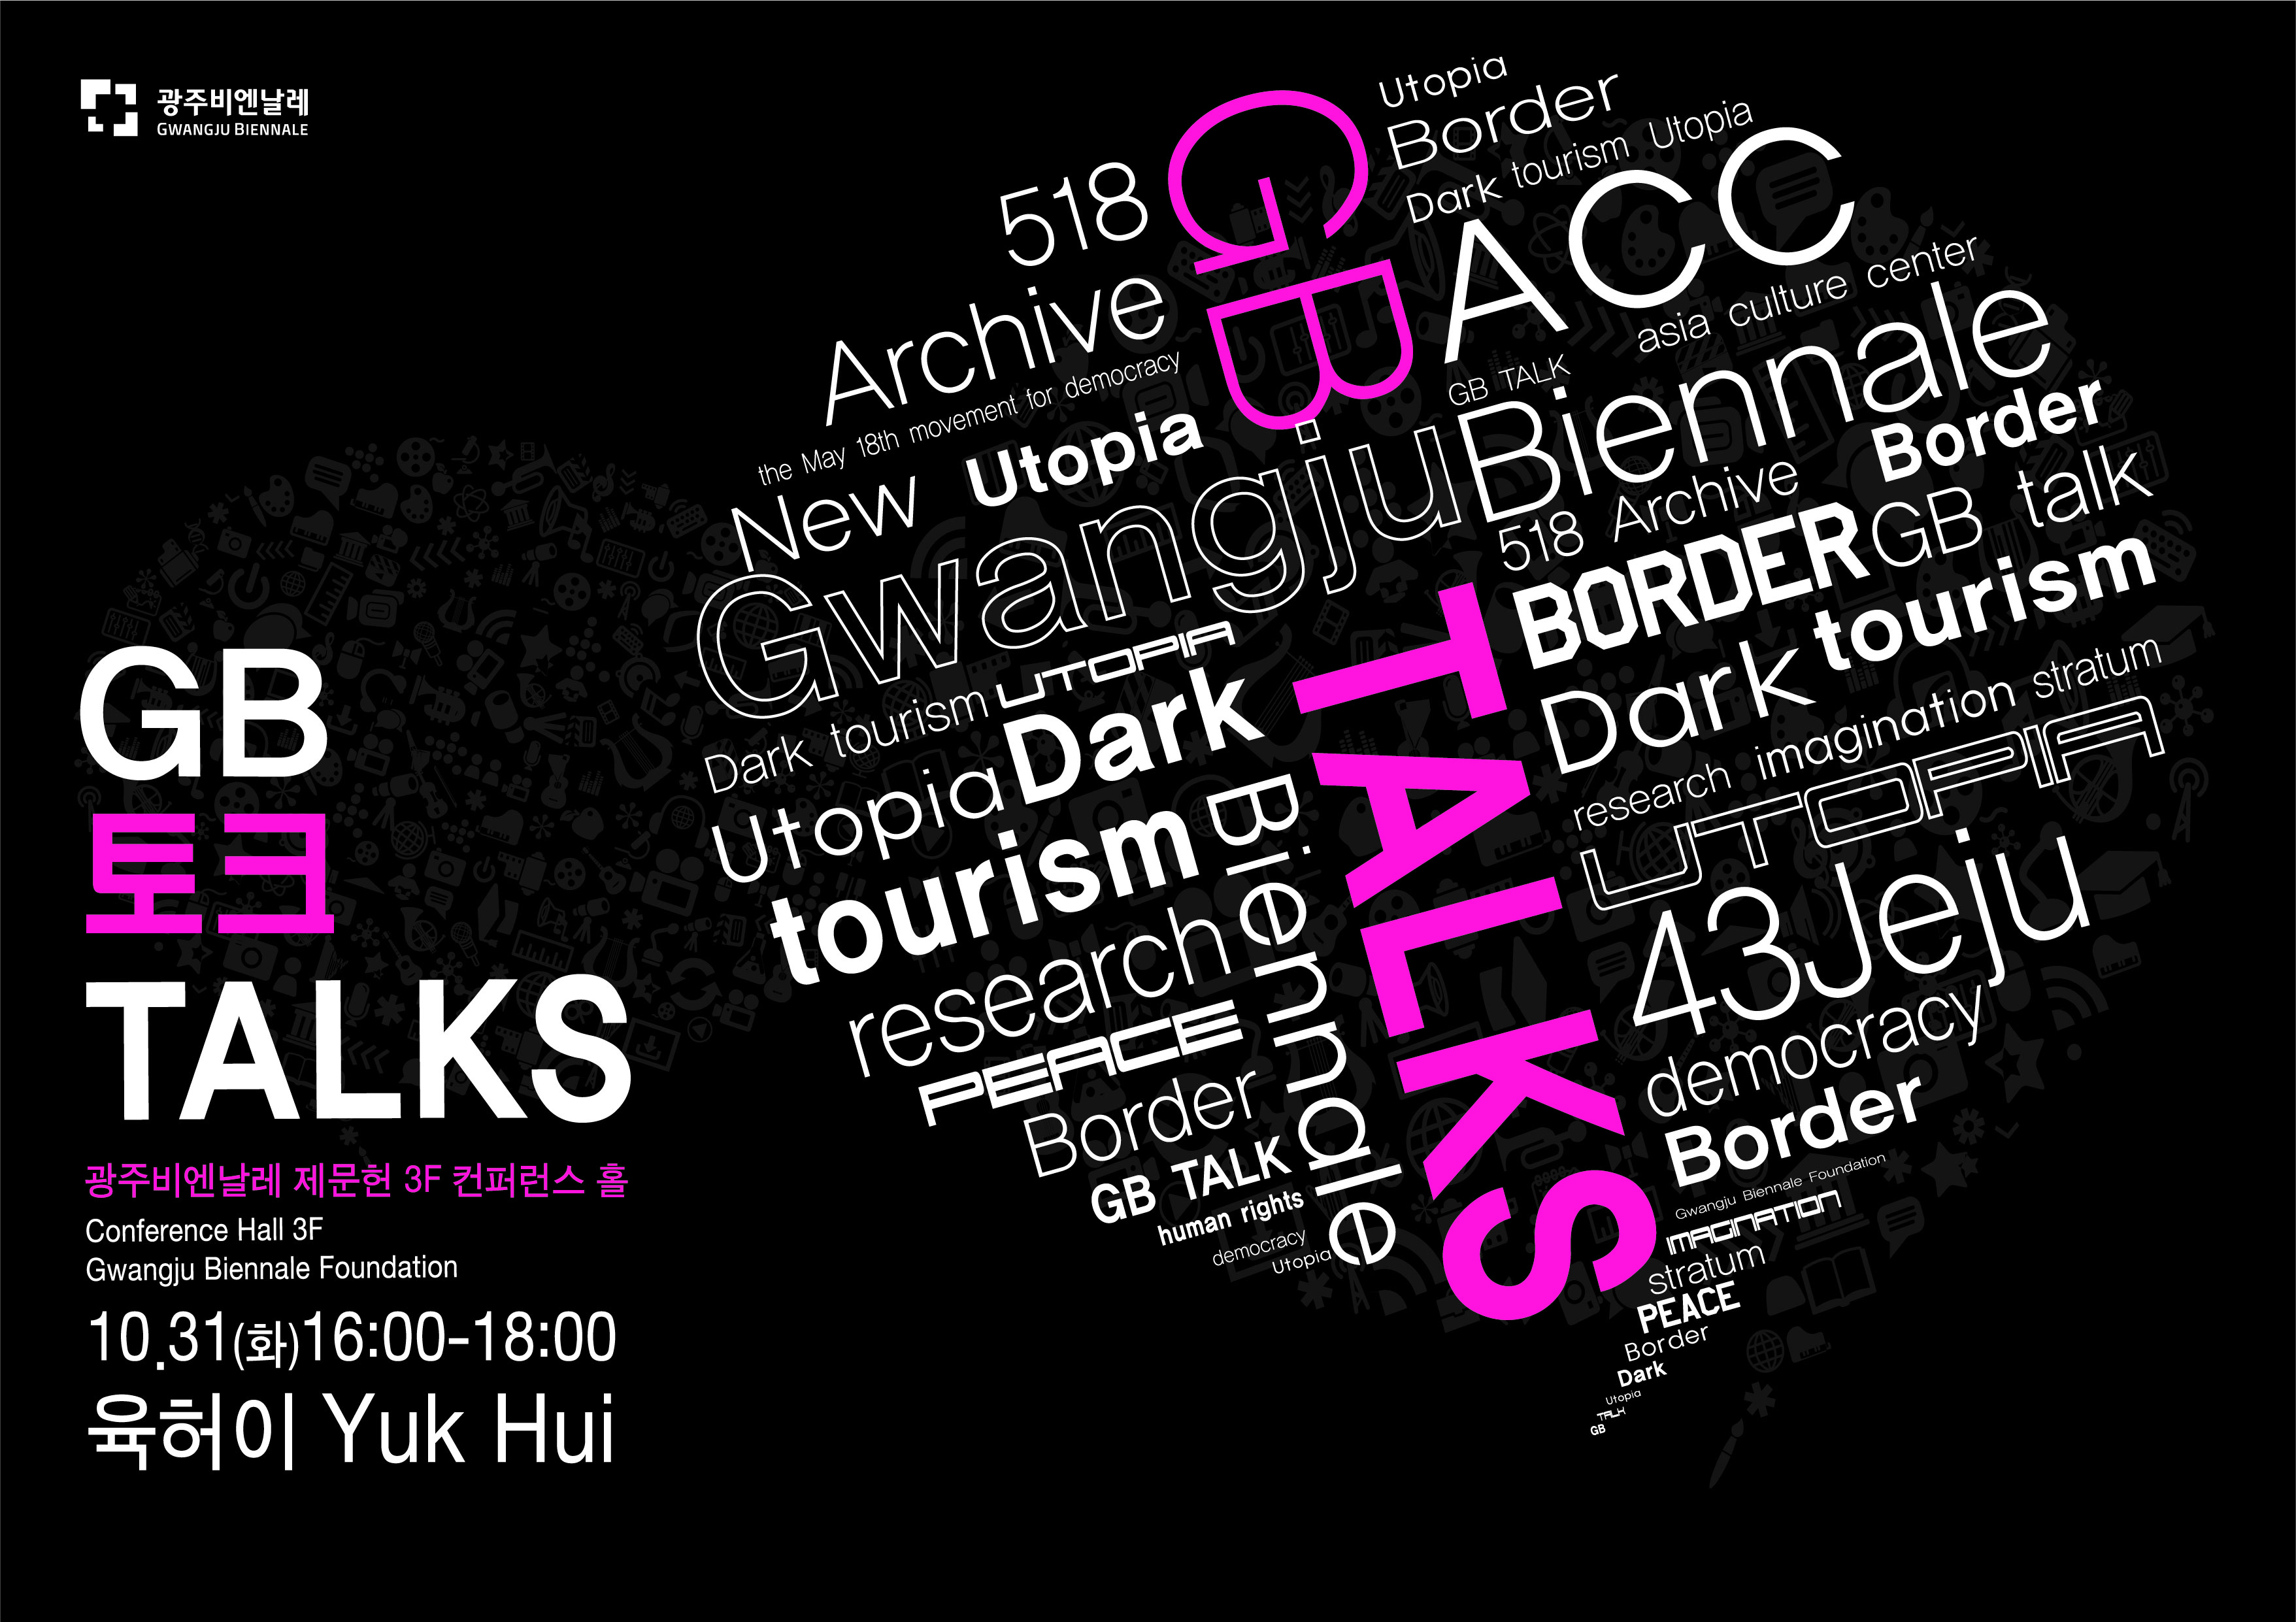 Upcoming GB Talks _ vol.2